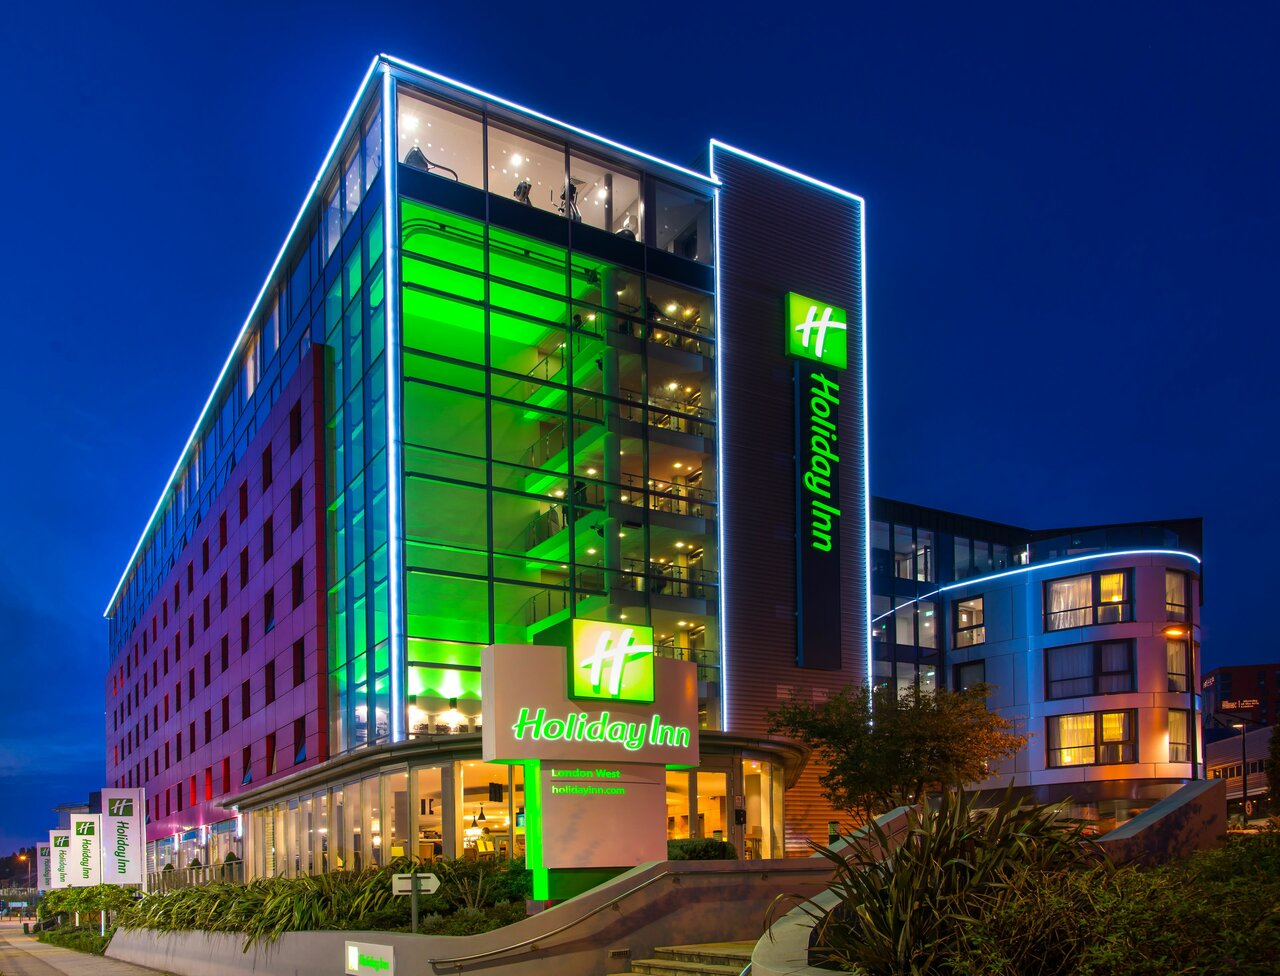 Holiday Inn London – West